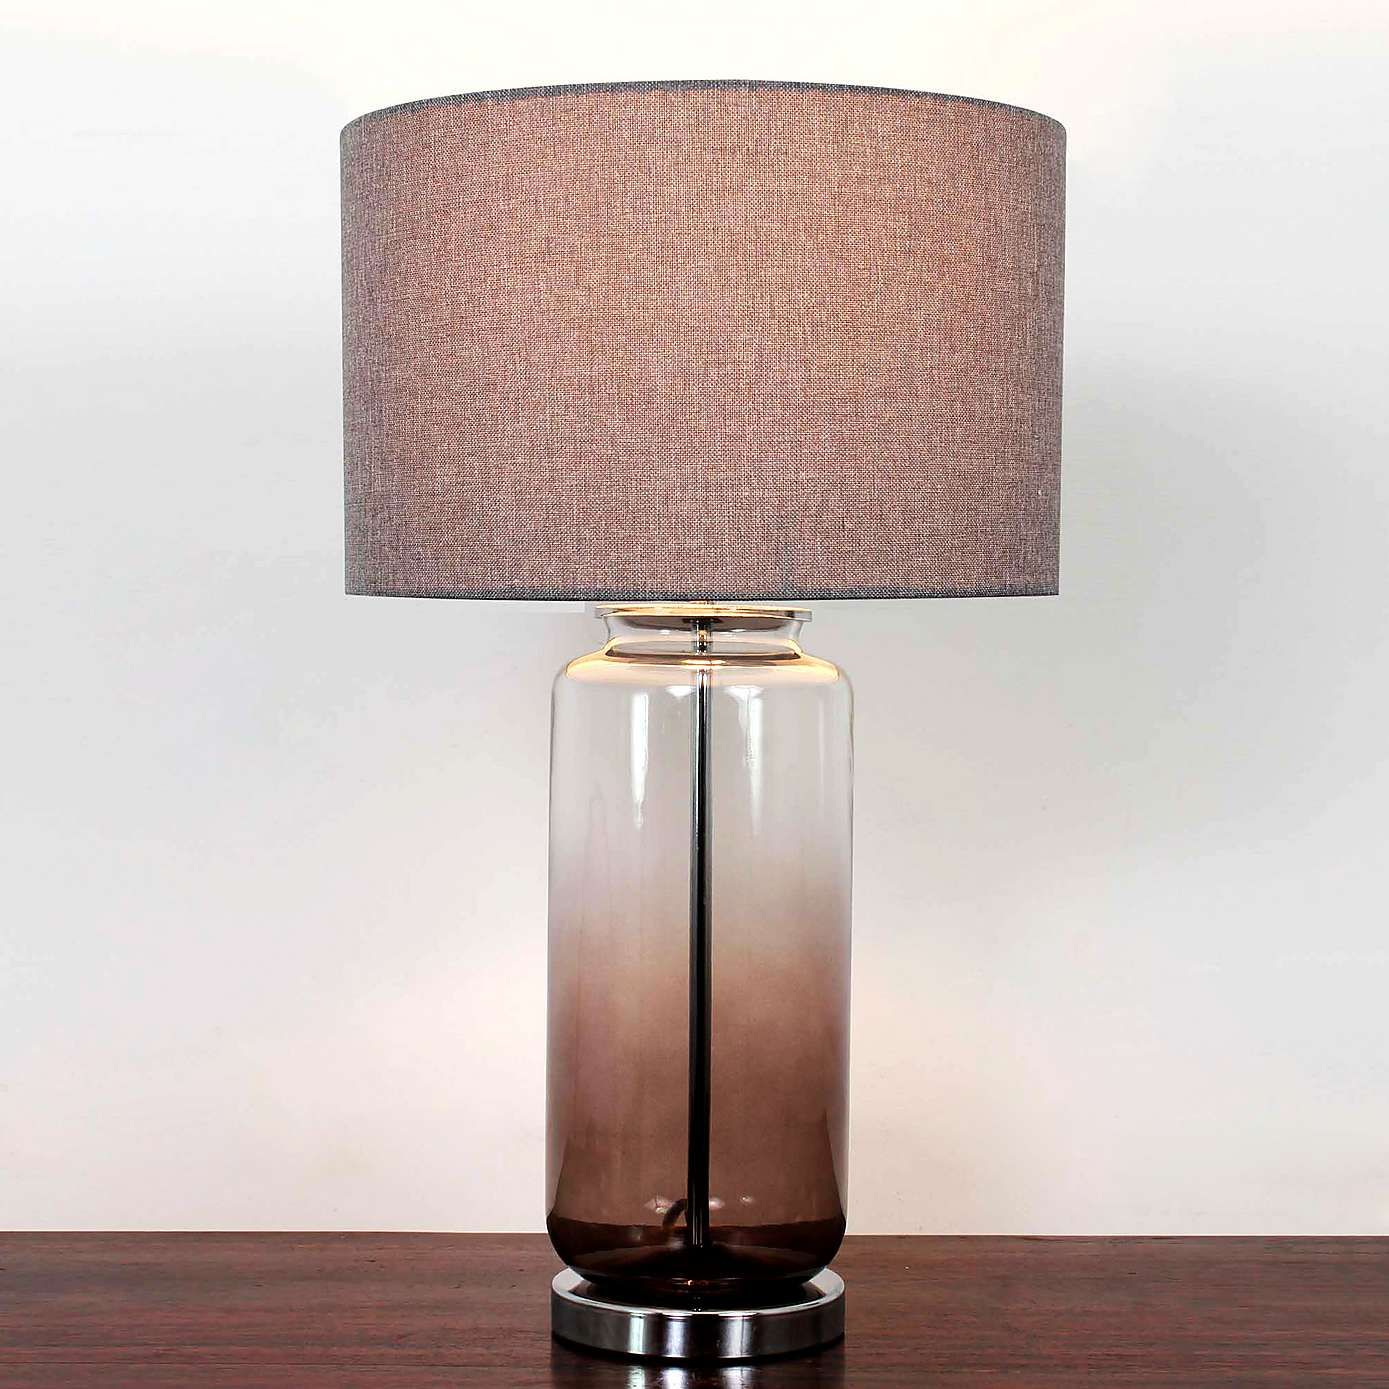 Hotel Large Ombre Glass Table Lamp | Glass table lamps, Glass table ...